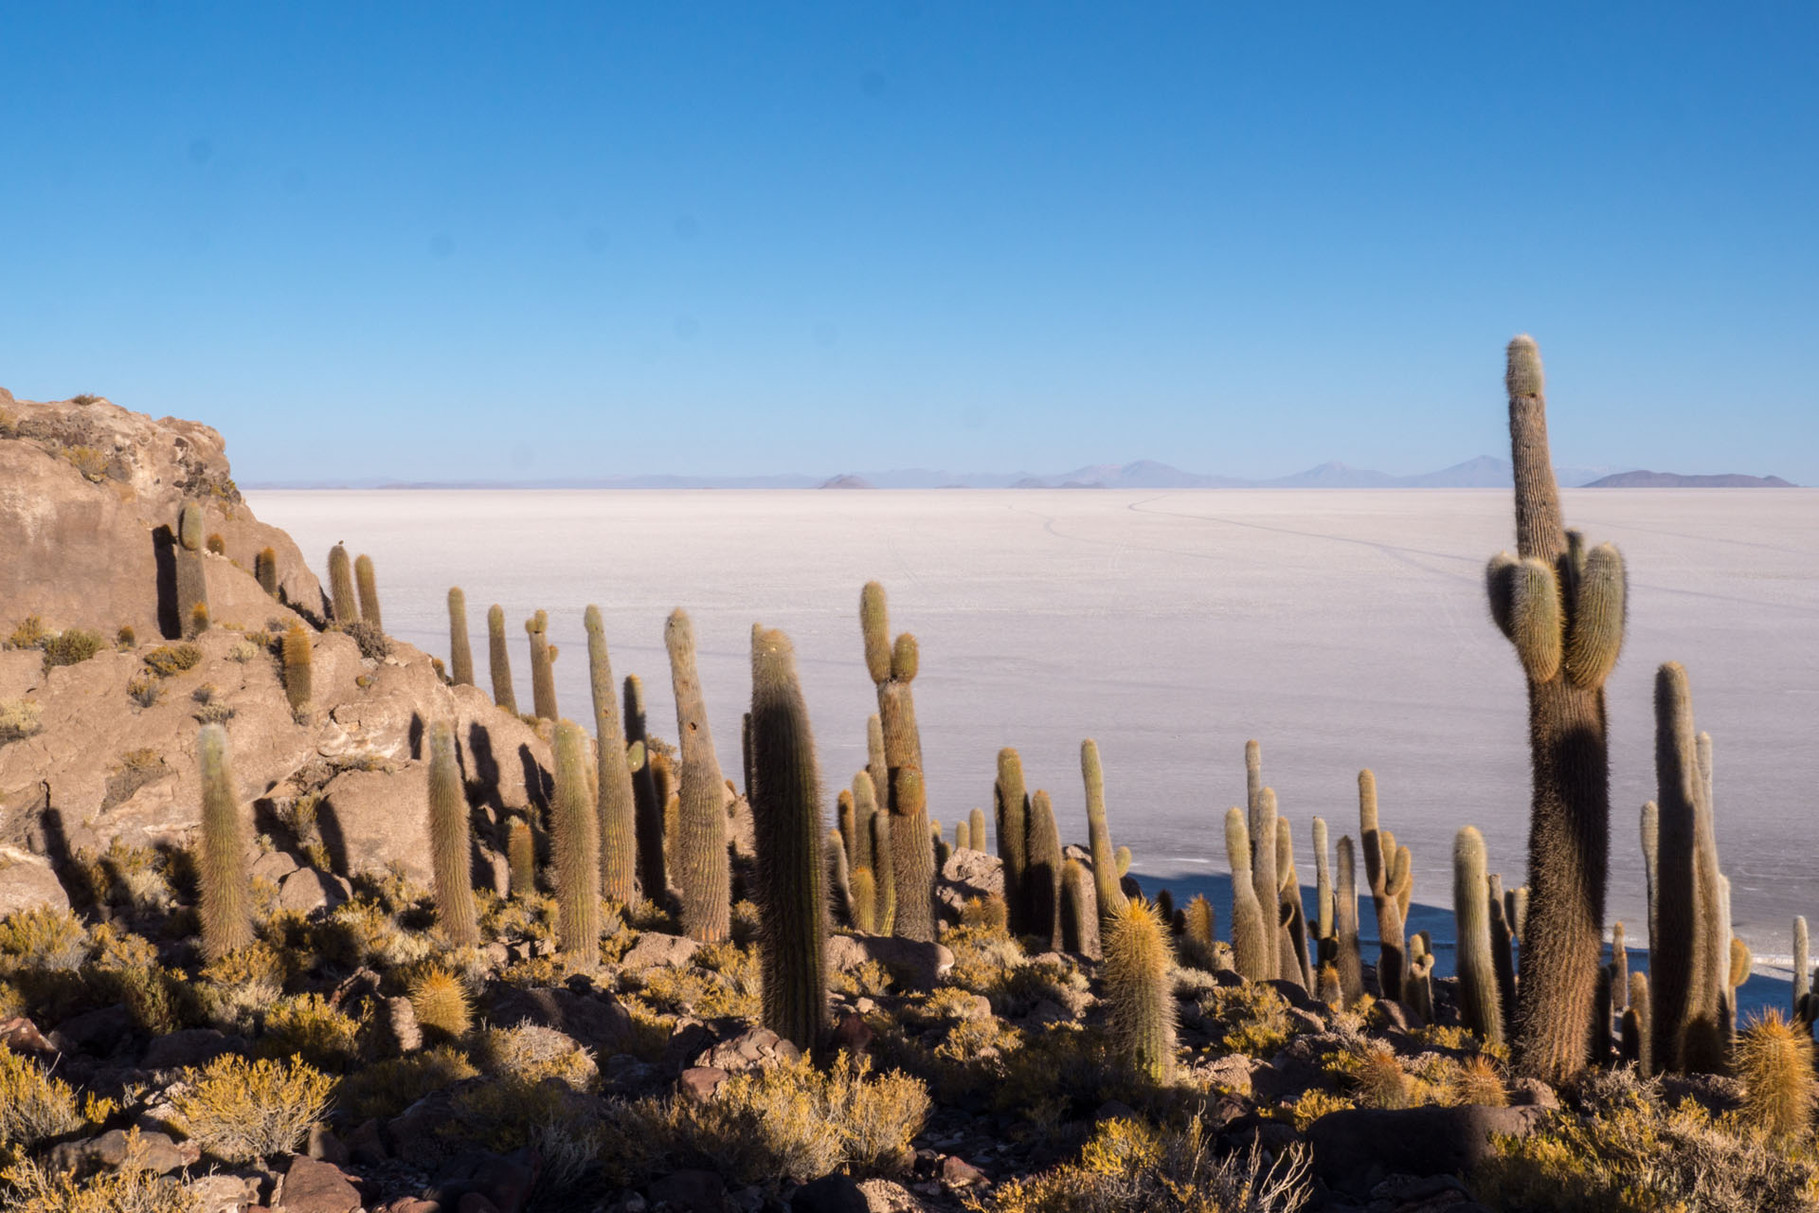 Isla de Pescado/Incahuasi: One of several rock/cactus island in the salt flat